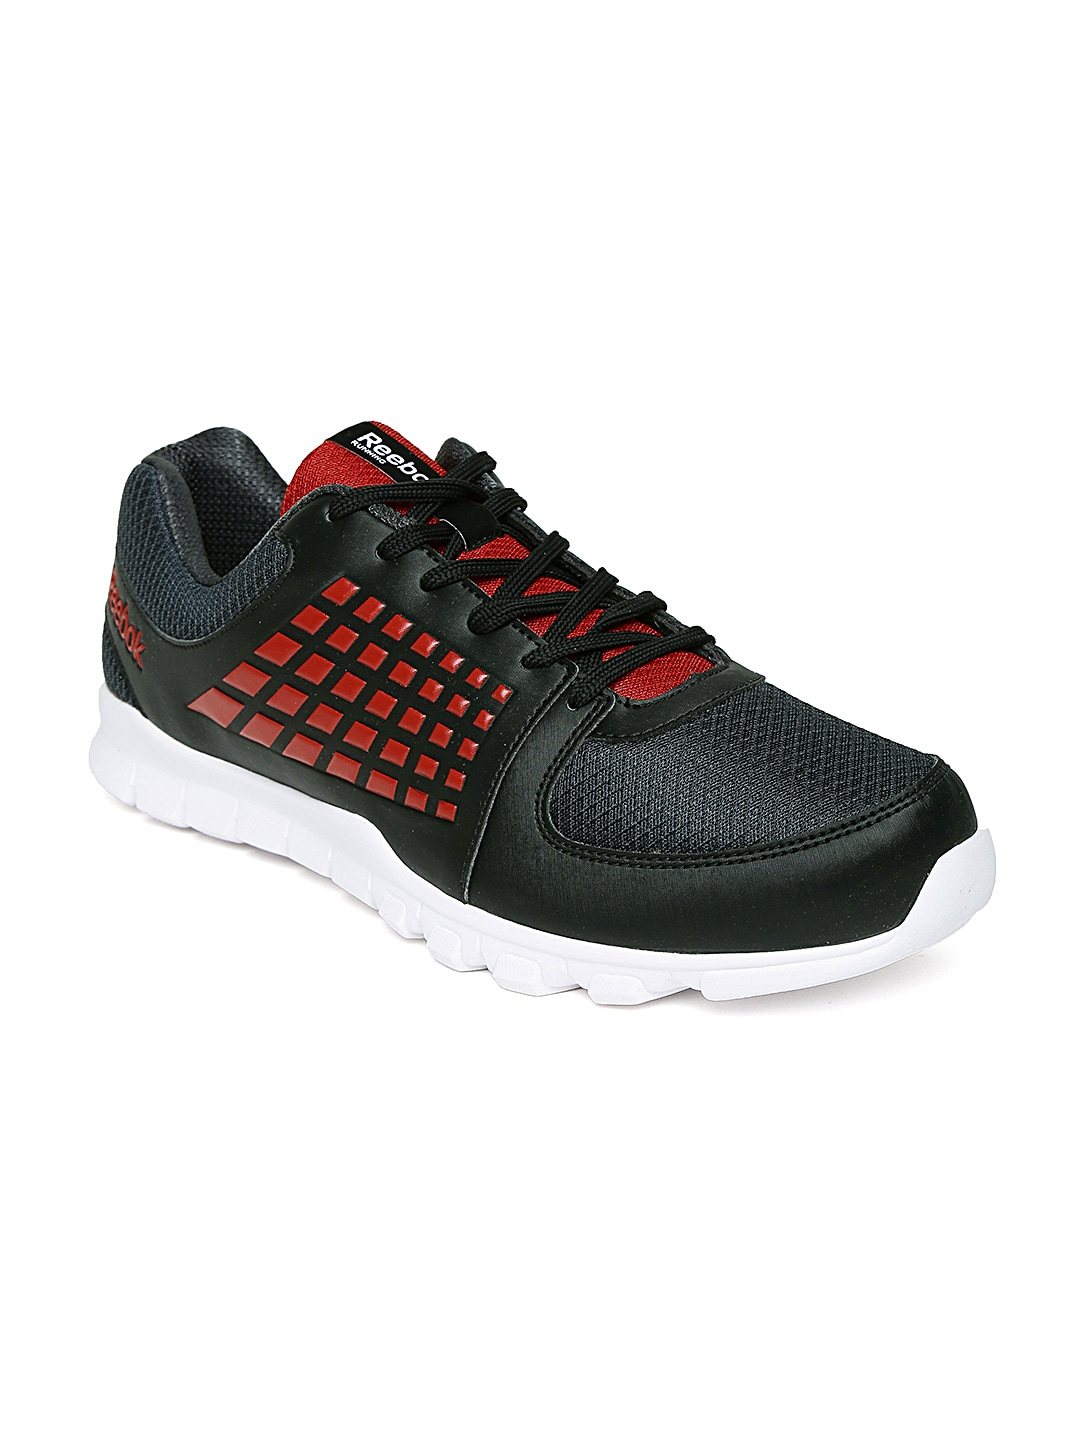 Reebok Men Black Electrify Speed Running Shoes